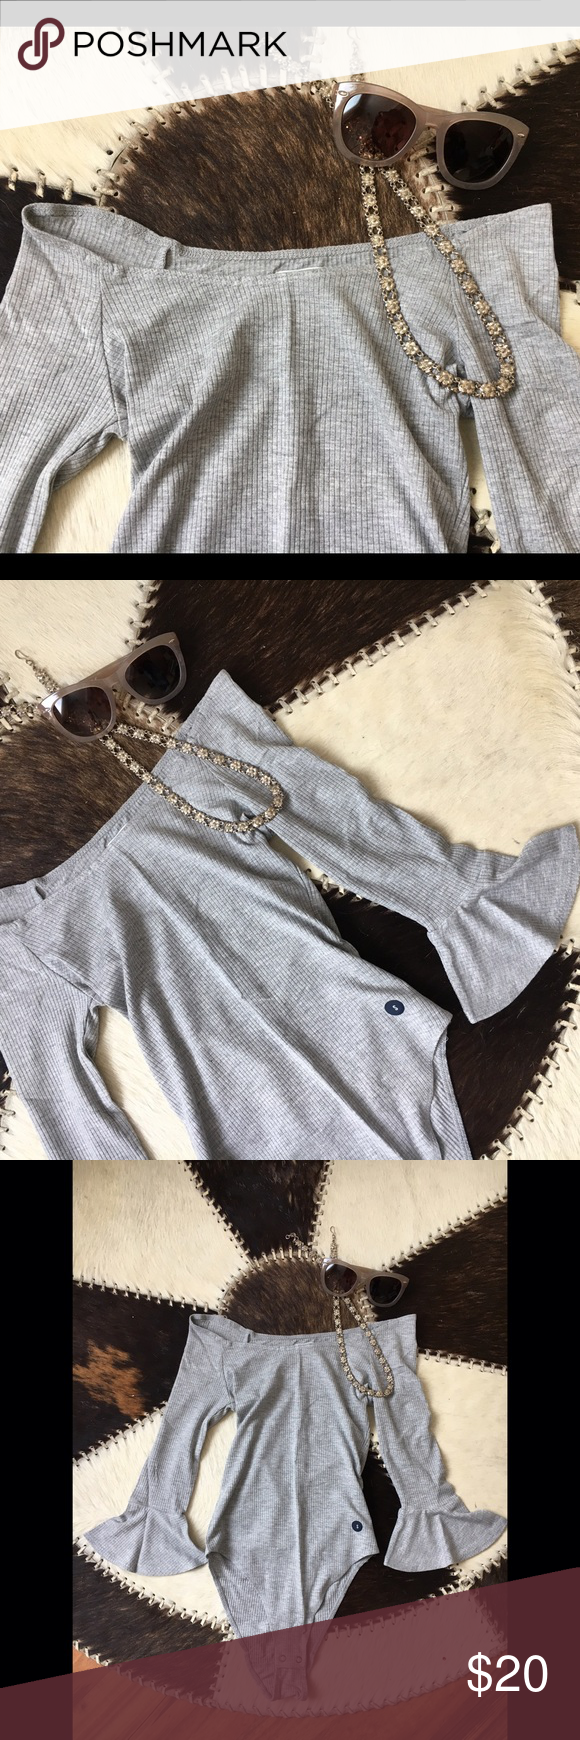 NWT Off-The-Shoulder Bodysuit - NWT Off-The-Shoulder Bodysuit   - Grey robbed bodysuit with off the shoulder neckline, and three-quarter bell sleeves. Snap closure.  - NEW WITH TAGS Abercrombie & Fitch Tops Tees - Long Sleeve